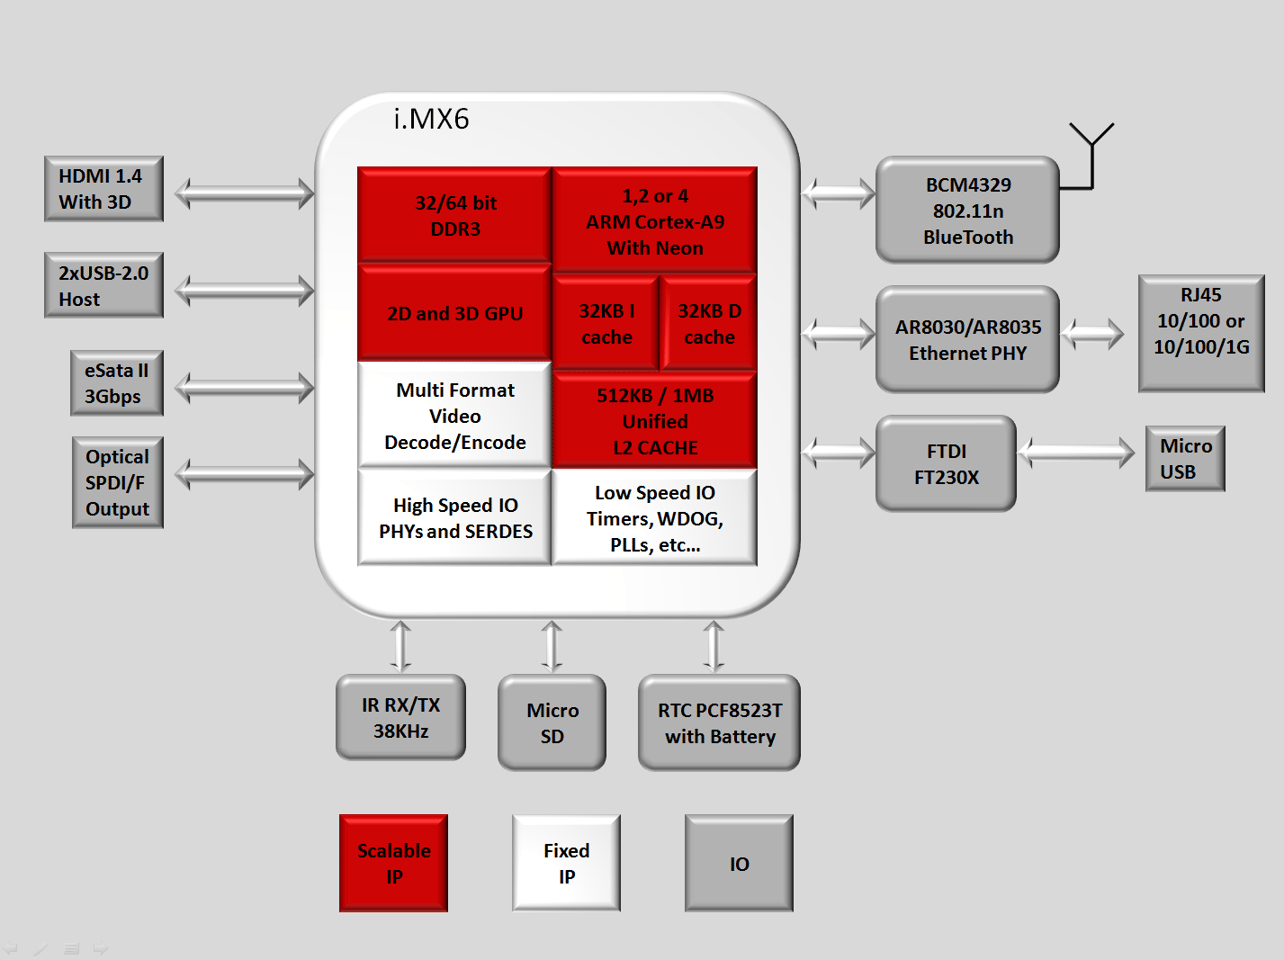 Graphic detailing the i.MX6 system-on-chip architecture